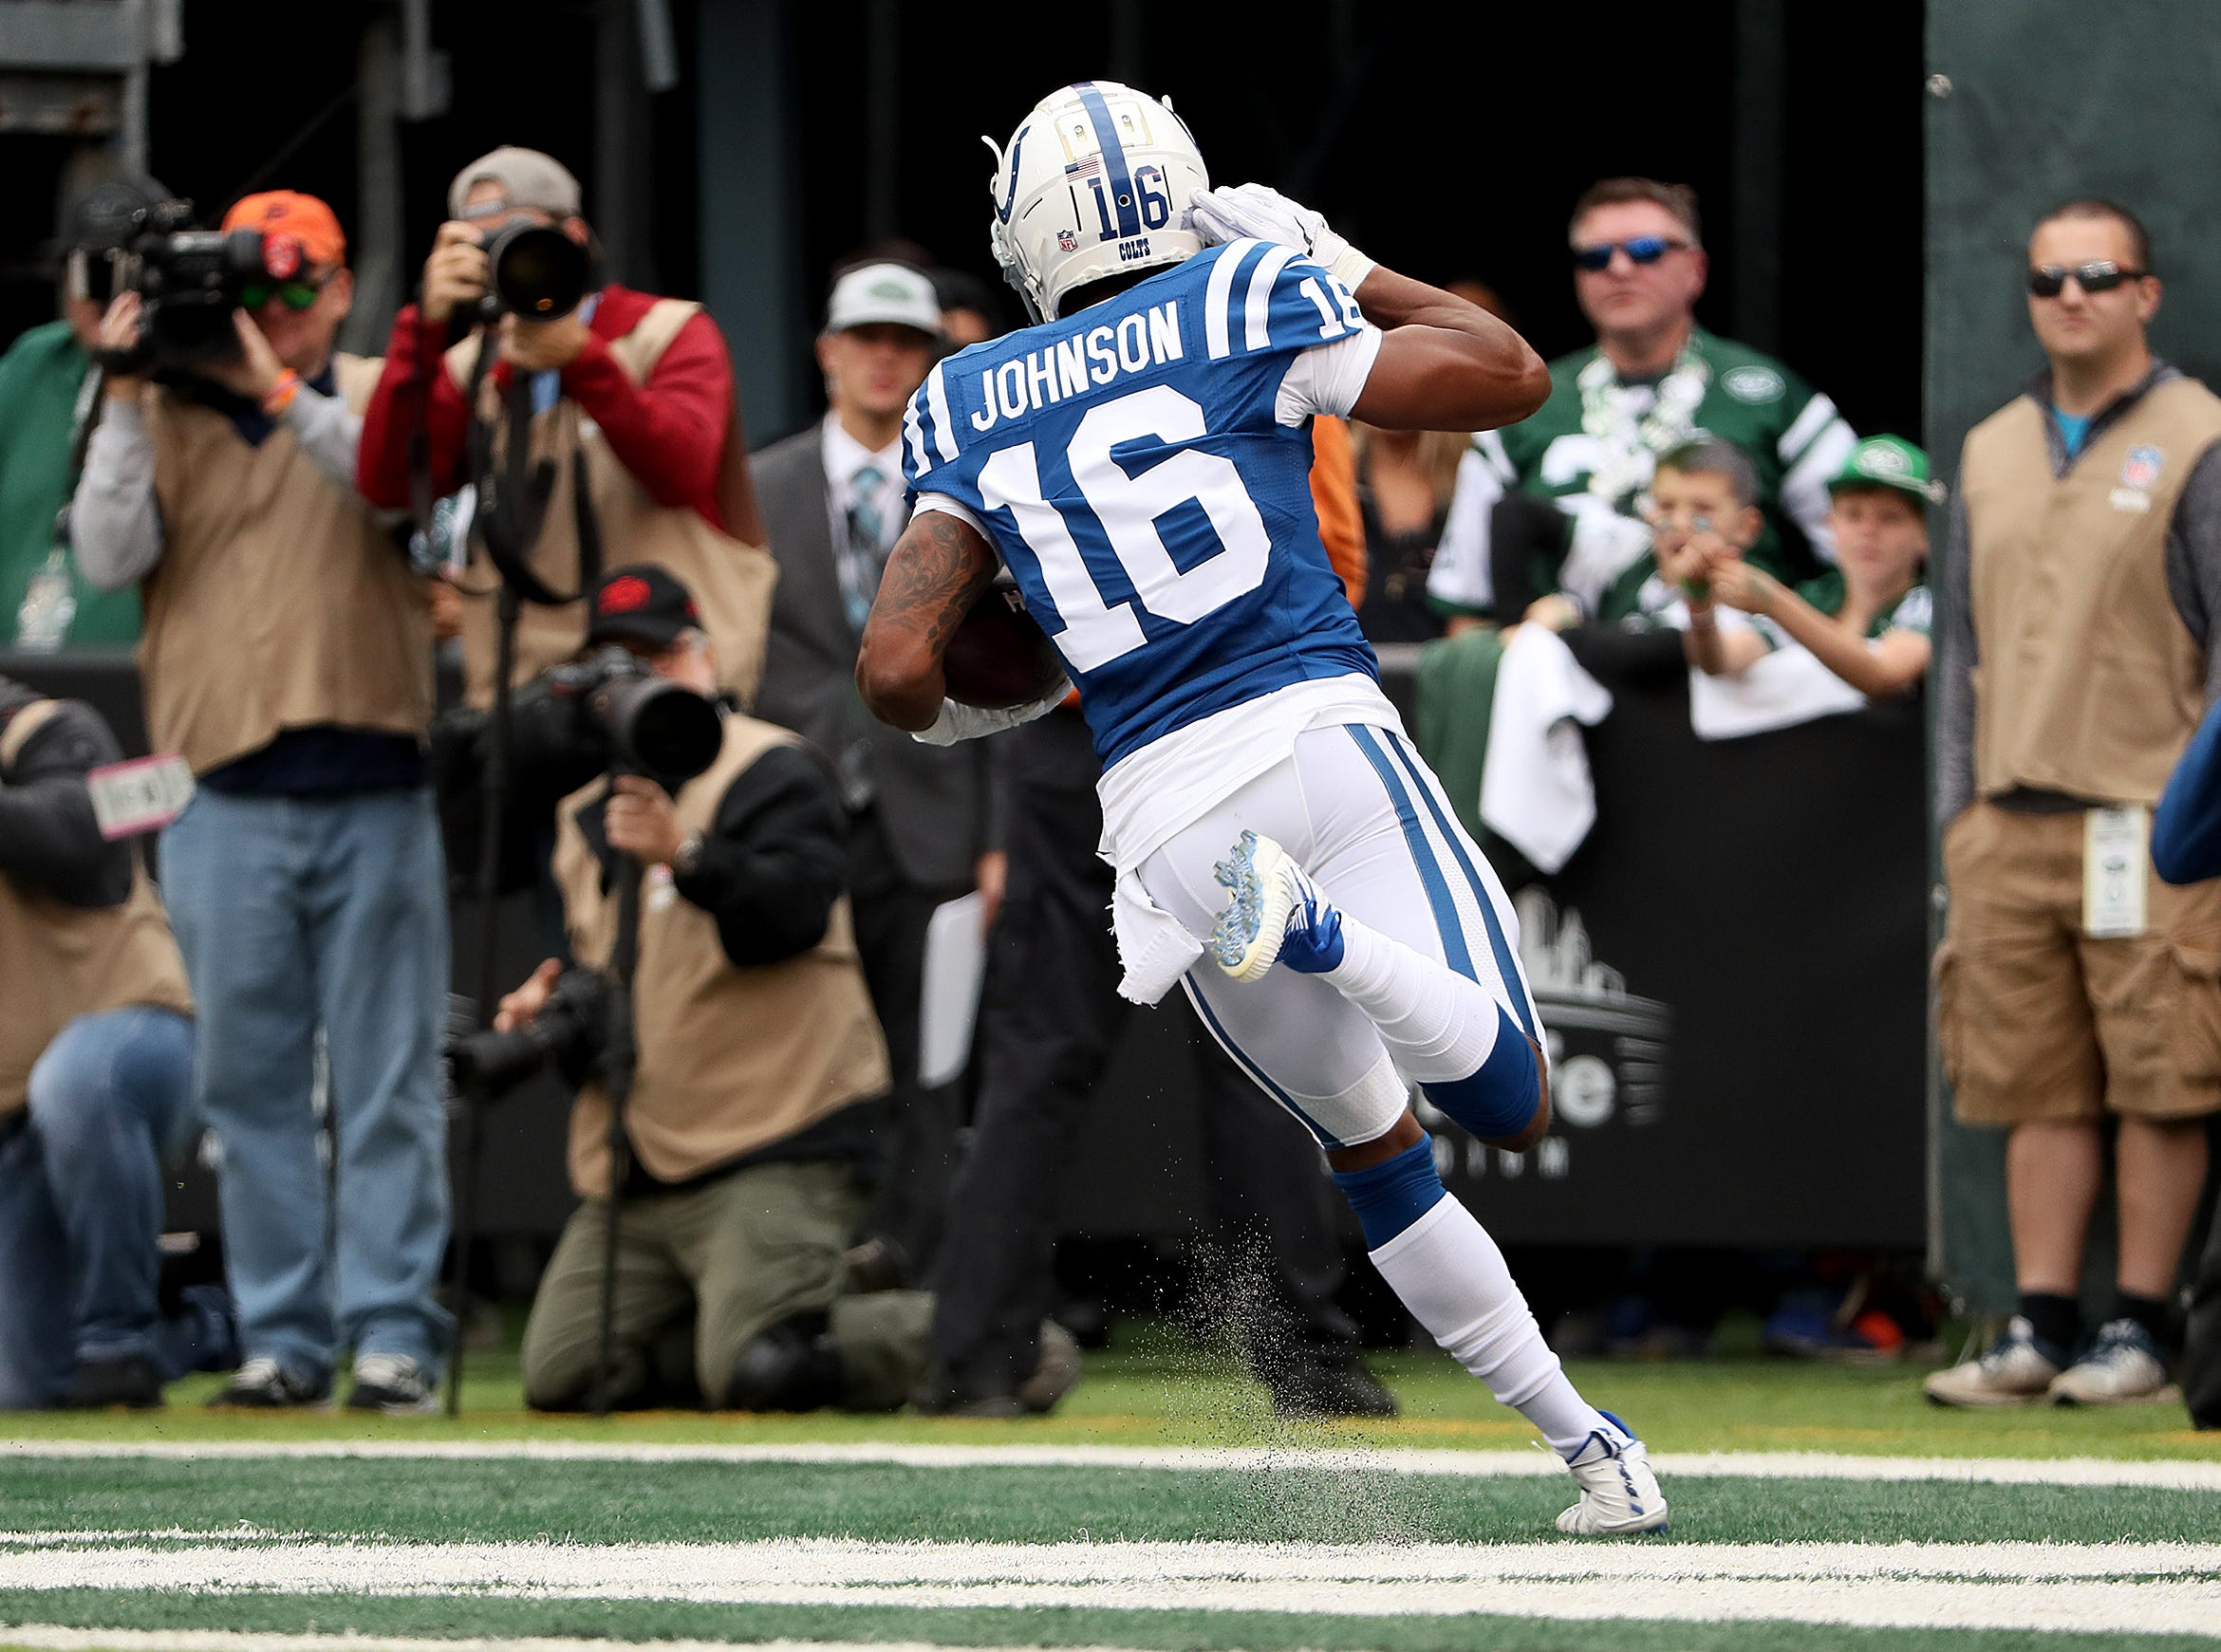 Indianapolis Colts wide receiver Marcus Johnson (16) celebrates his touchdown in the first quarter of their game against the New York Jets at MetLife Stadium in East Rutherford, N.J., Sunday, Oct. 14, 2018.